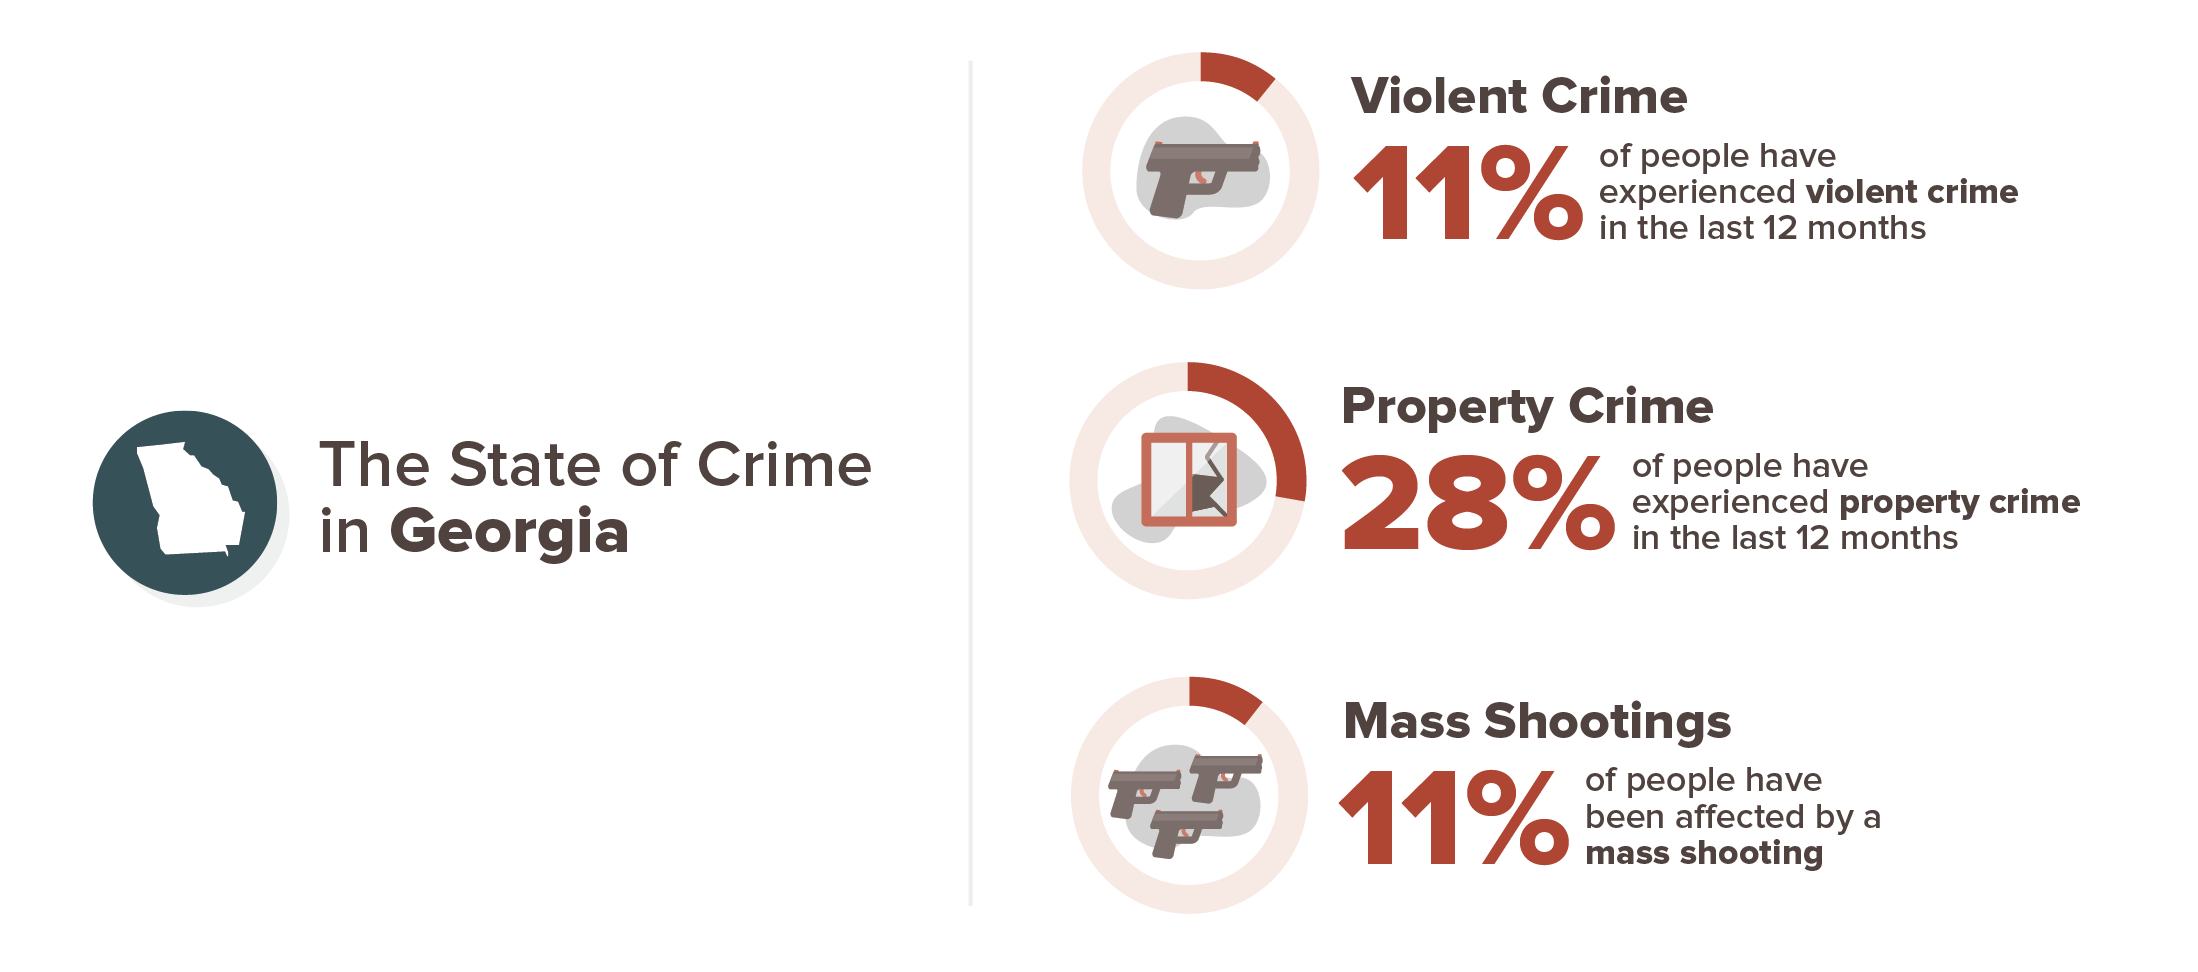 11% of people in Georgia experienced a violent crime over the pat 12 months. 28% of people in Georgia experienced a property crime in the past 12 months and 11% of people in Georgia have been affected by a mass shooting in their lifetime.